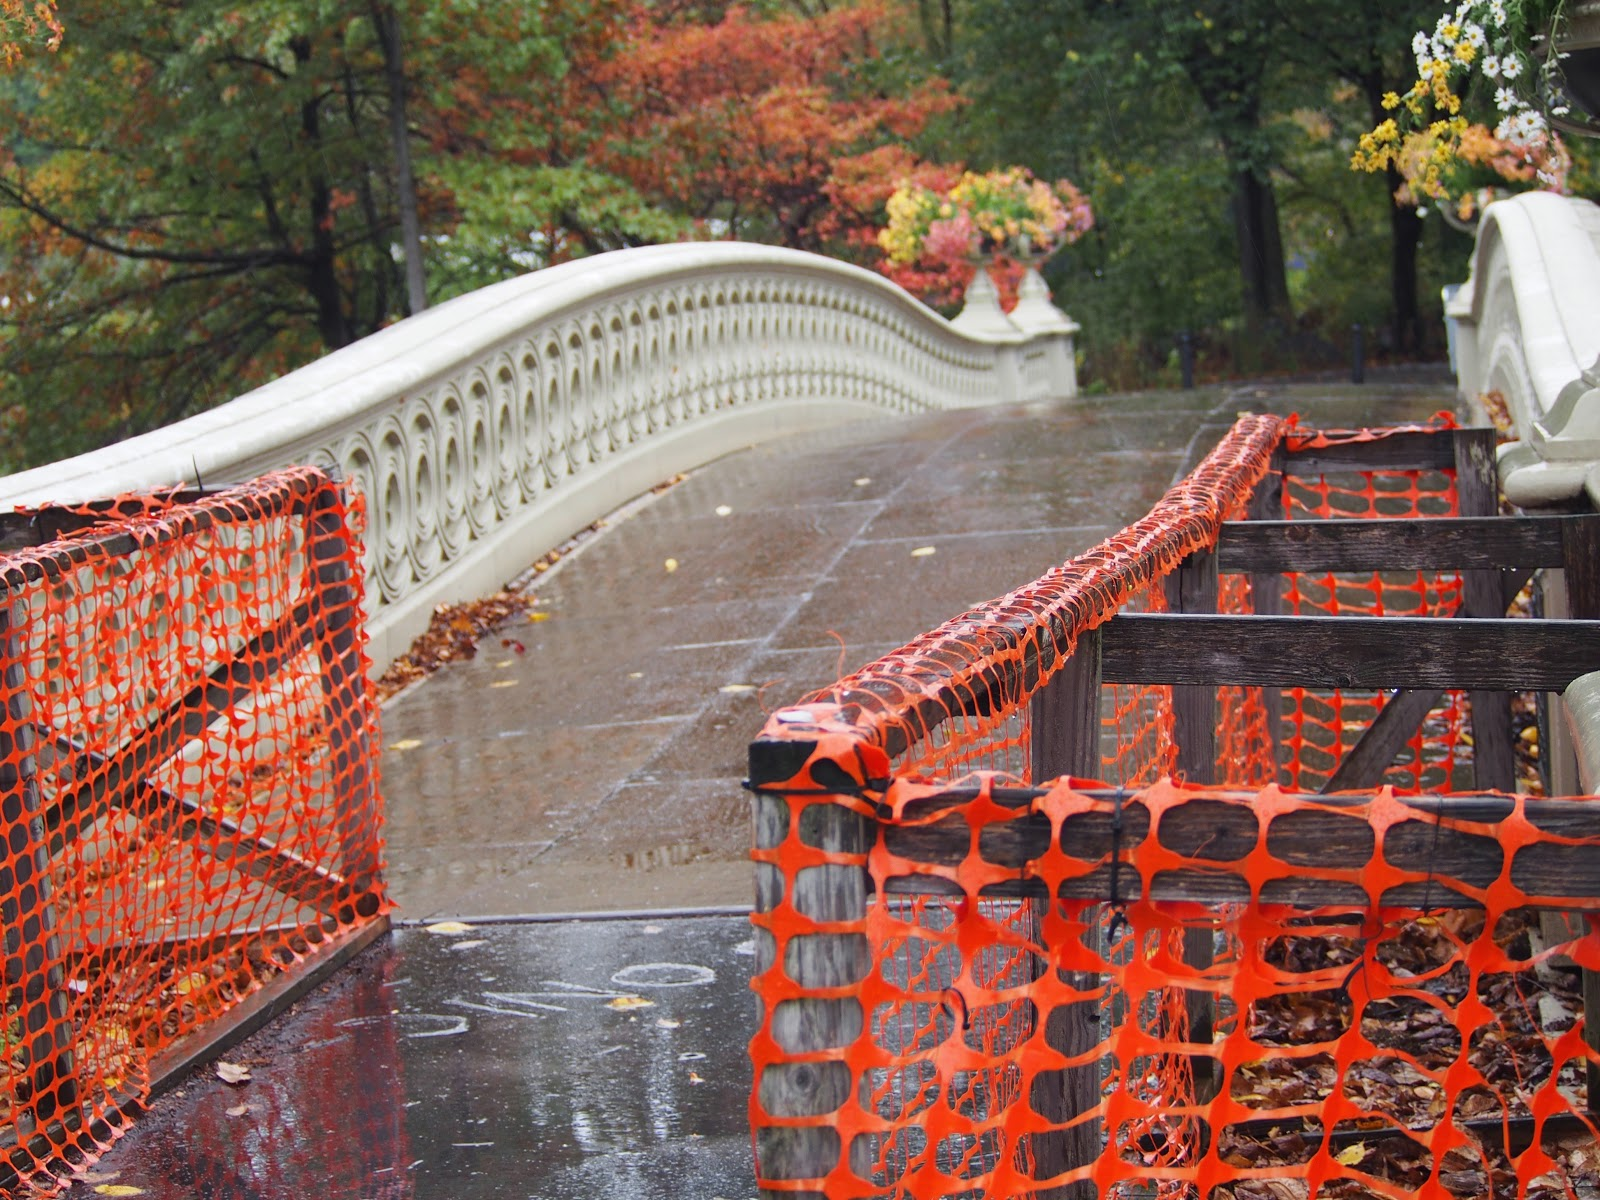 Empty Bridge, #emptybridge #bowbridge #centralpark #nyc #fall #fallfoliage #rainyday 2014